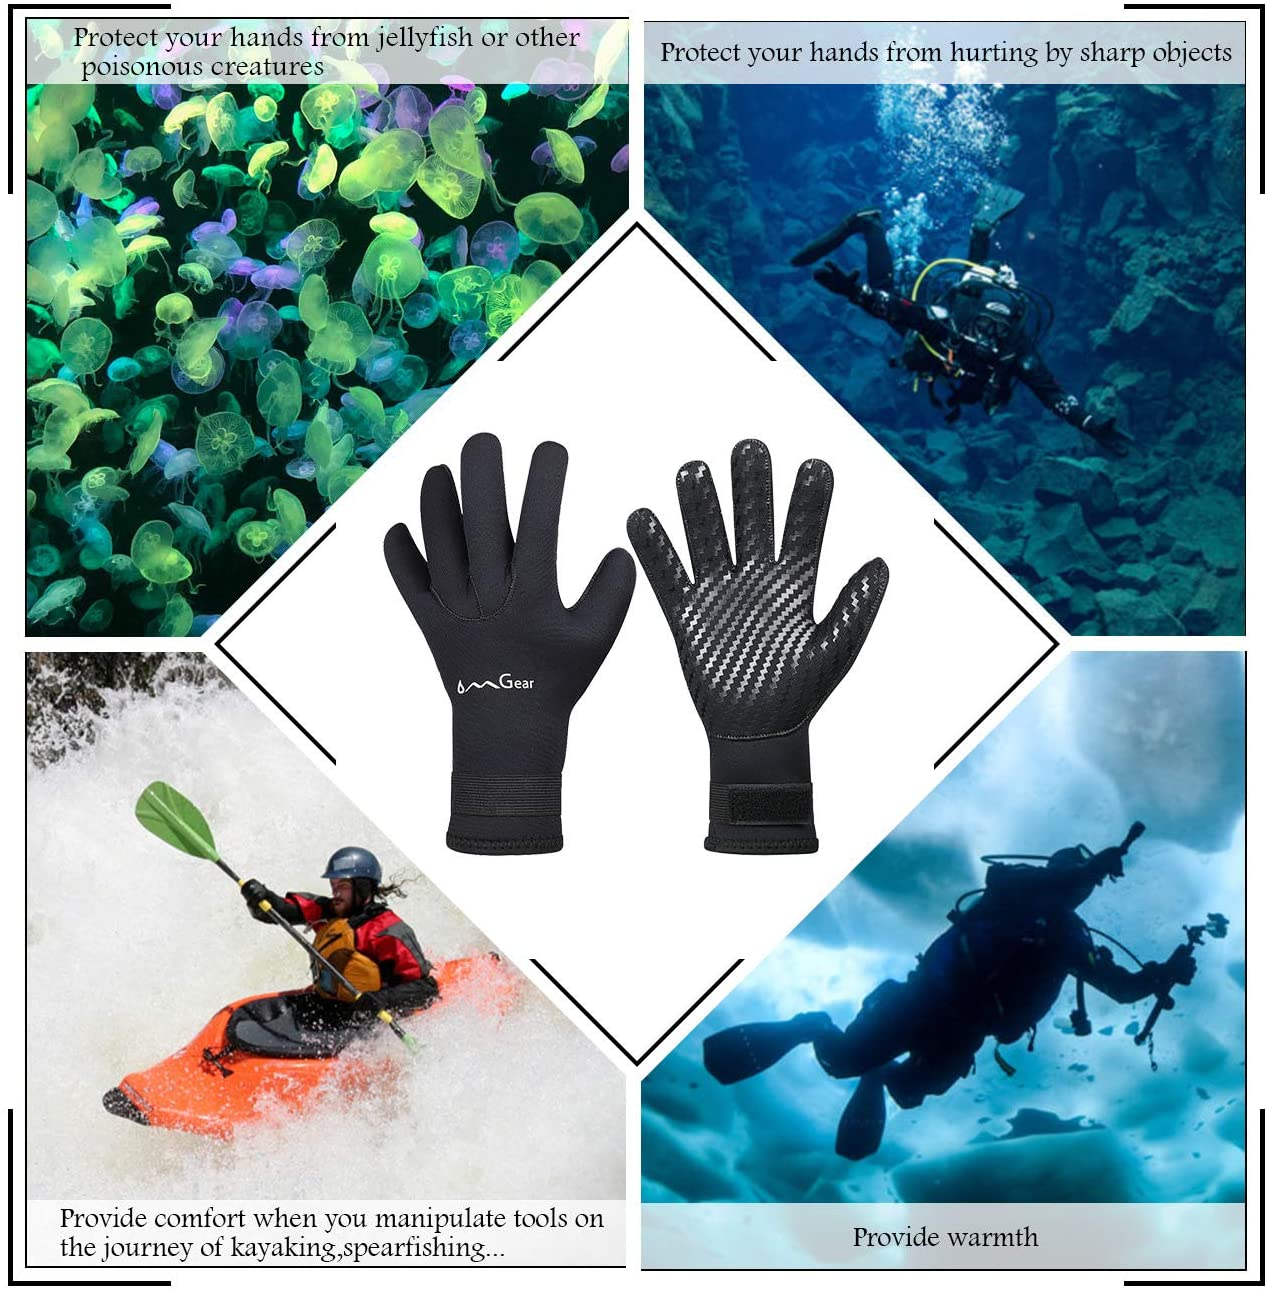 OMGear Neoprene Gloves Diving Wetsuit Gloves 3mm Flexible Thermal with Adjustable Waist Strap for Snorkeling Scuba Diving Surfing Kayaking Rafting Spearfishing Sailing